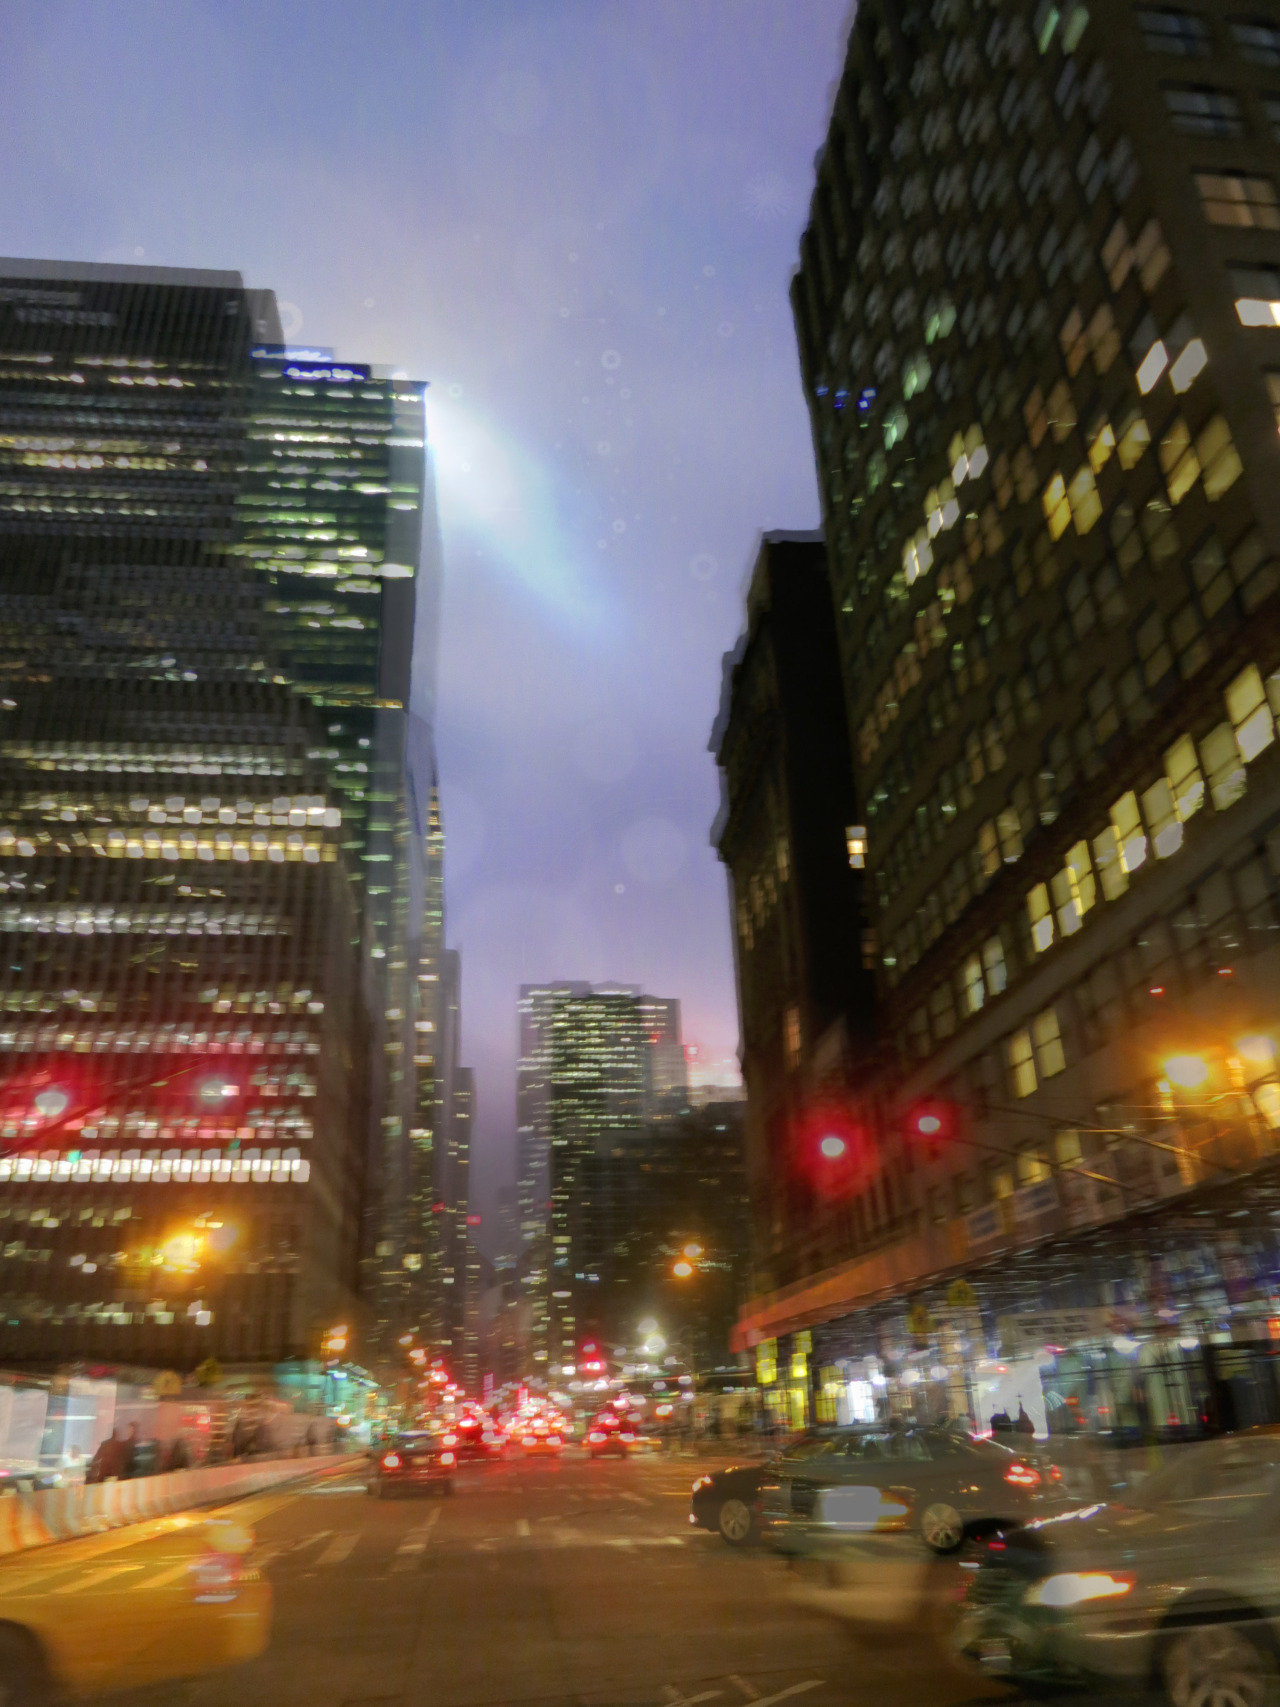 new york: a moment in the city of dreams - a tiny photoshop excursion taken and collated by me